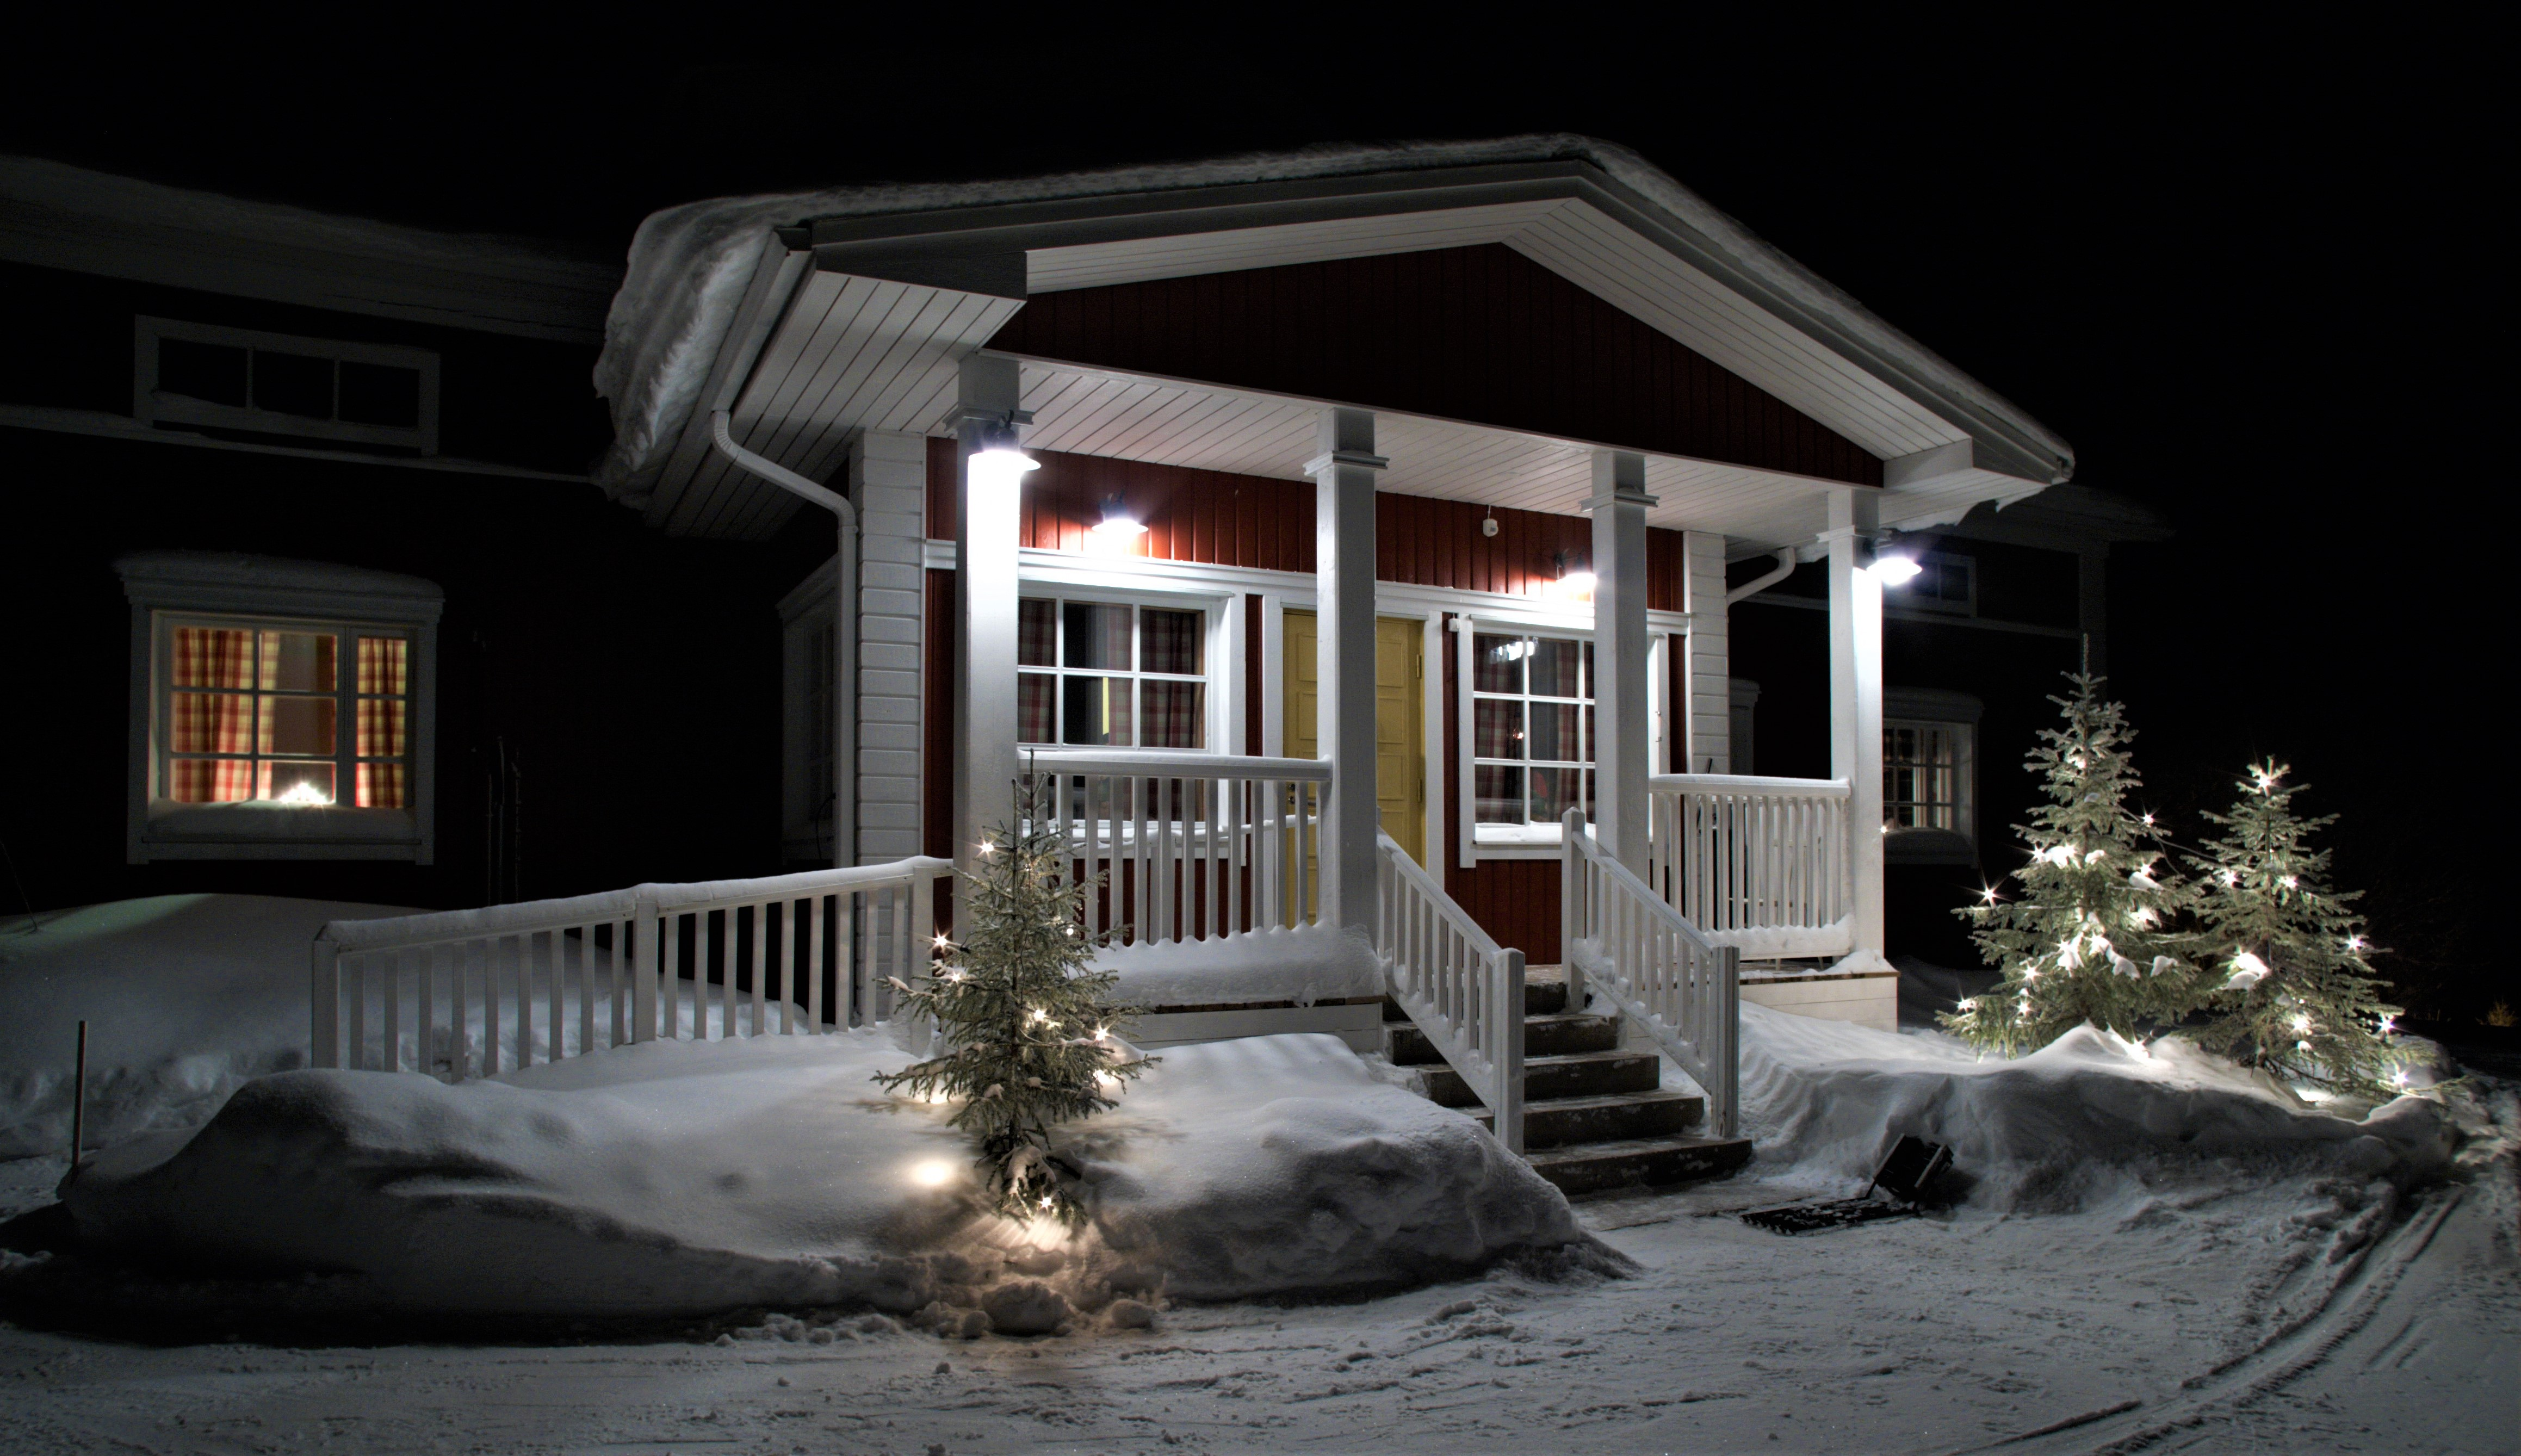 A Finnish house at Christmas